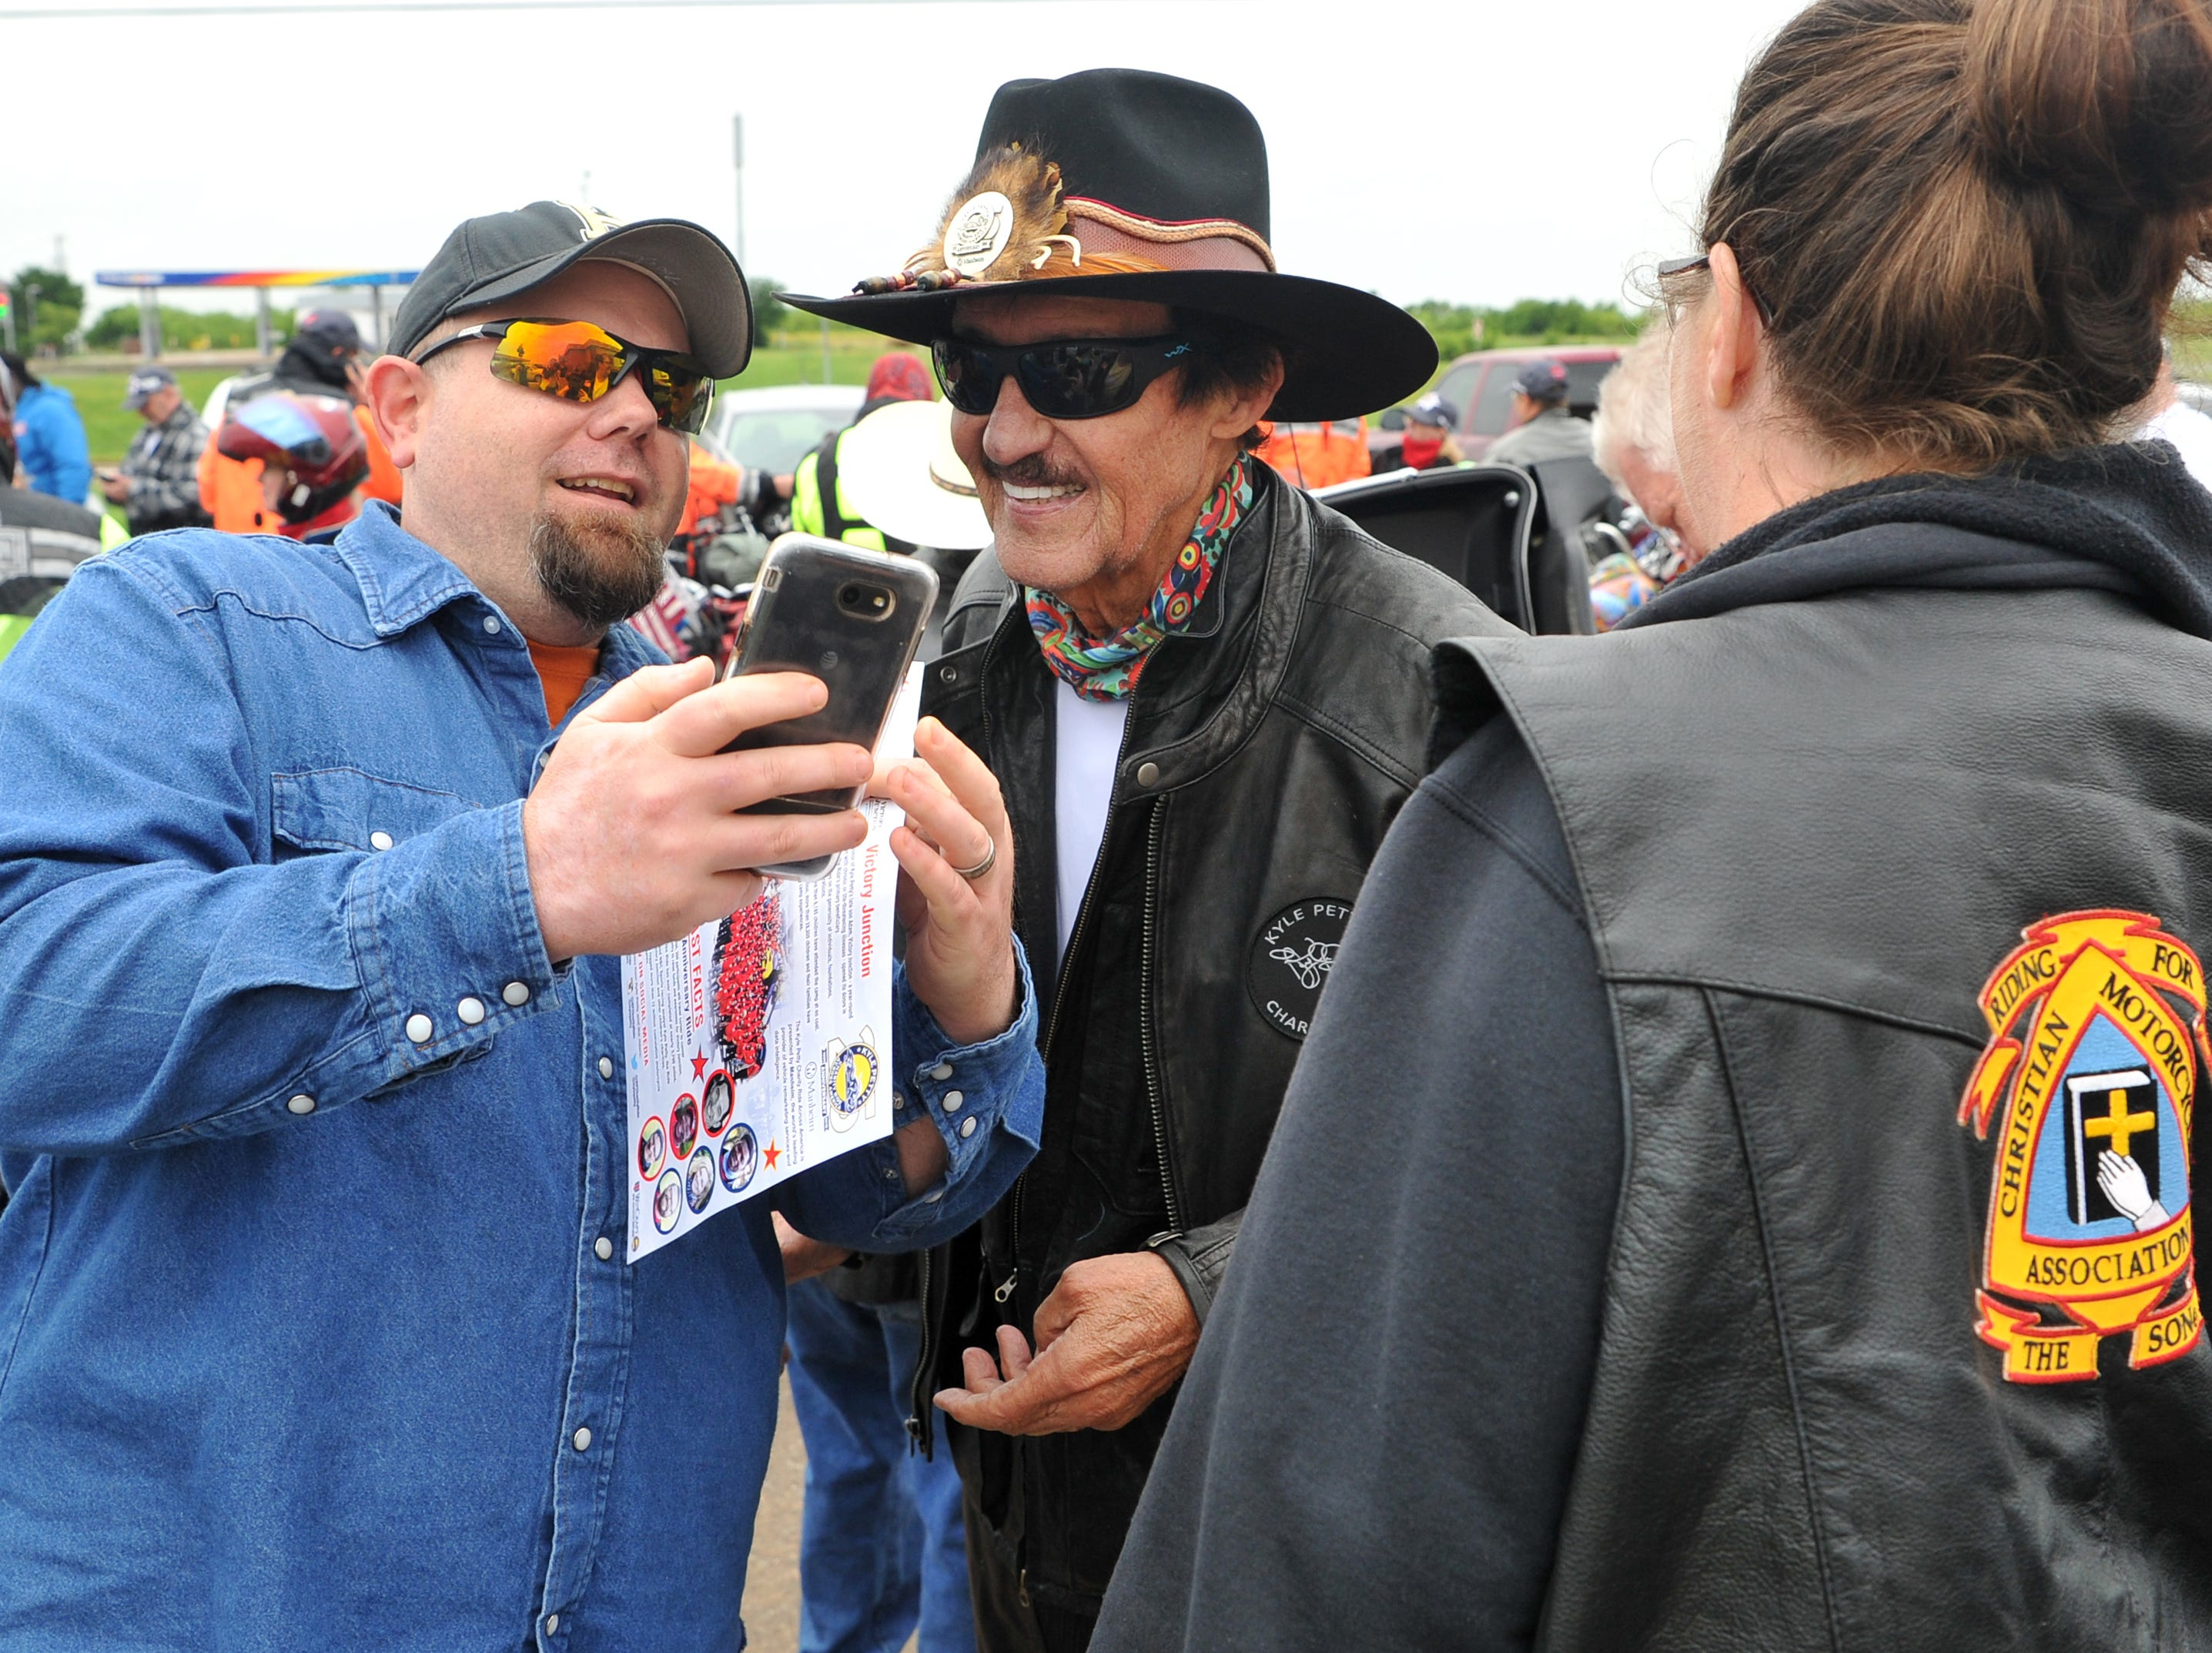 Former NASCAR driver Richard Petty met with fans, Wednesday morning while his son's, Kyle Petty, charitable motorcycle ride made a fuel stop in Wichita Falls.